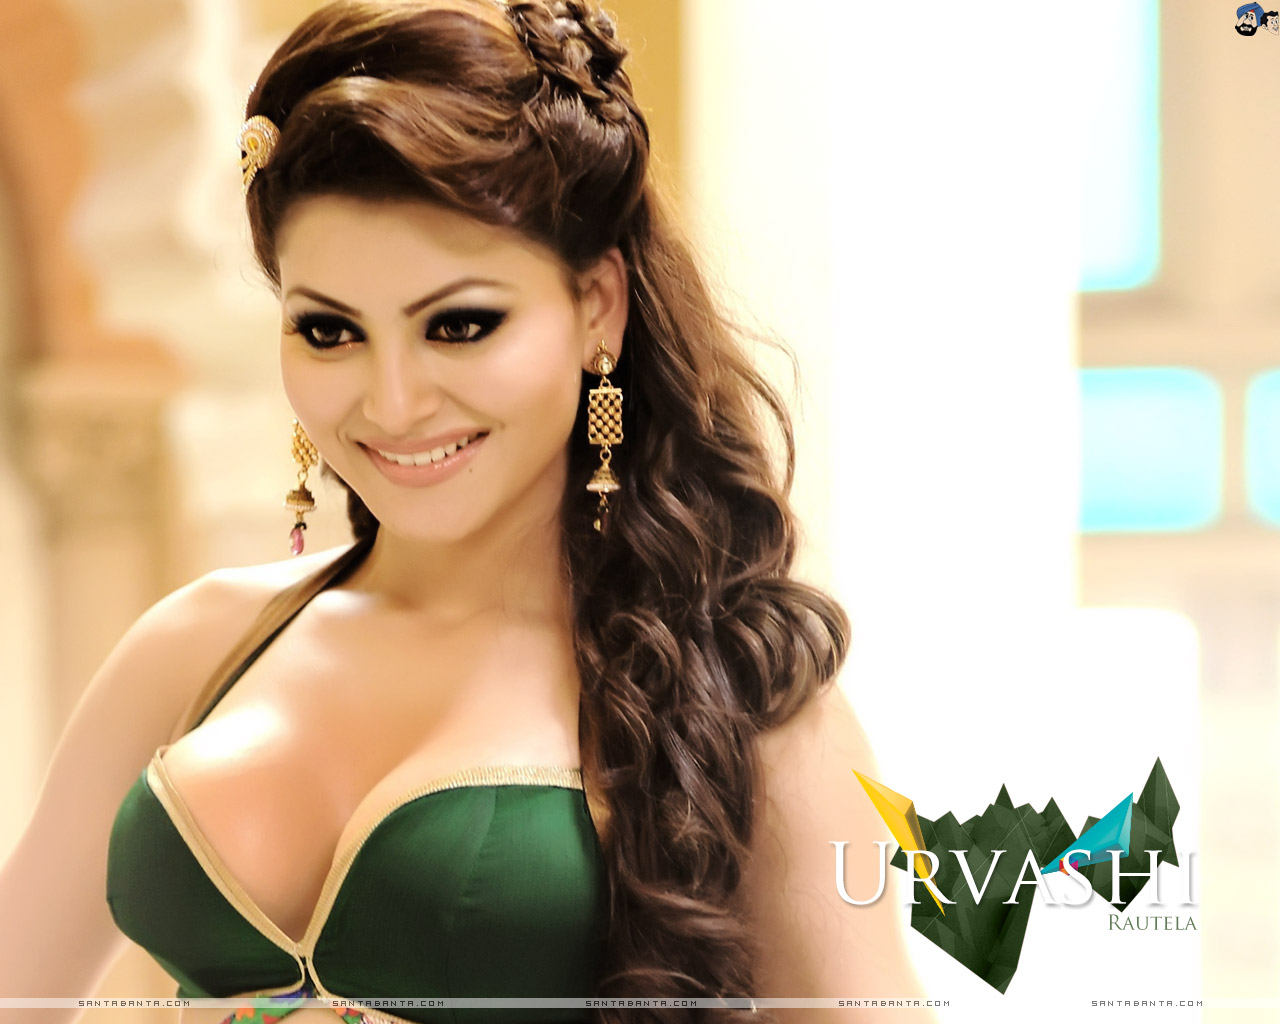 Urvashi Rautela Hd Wallpapers  Most Beautiful Places In -1802